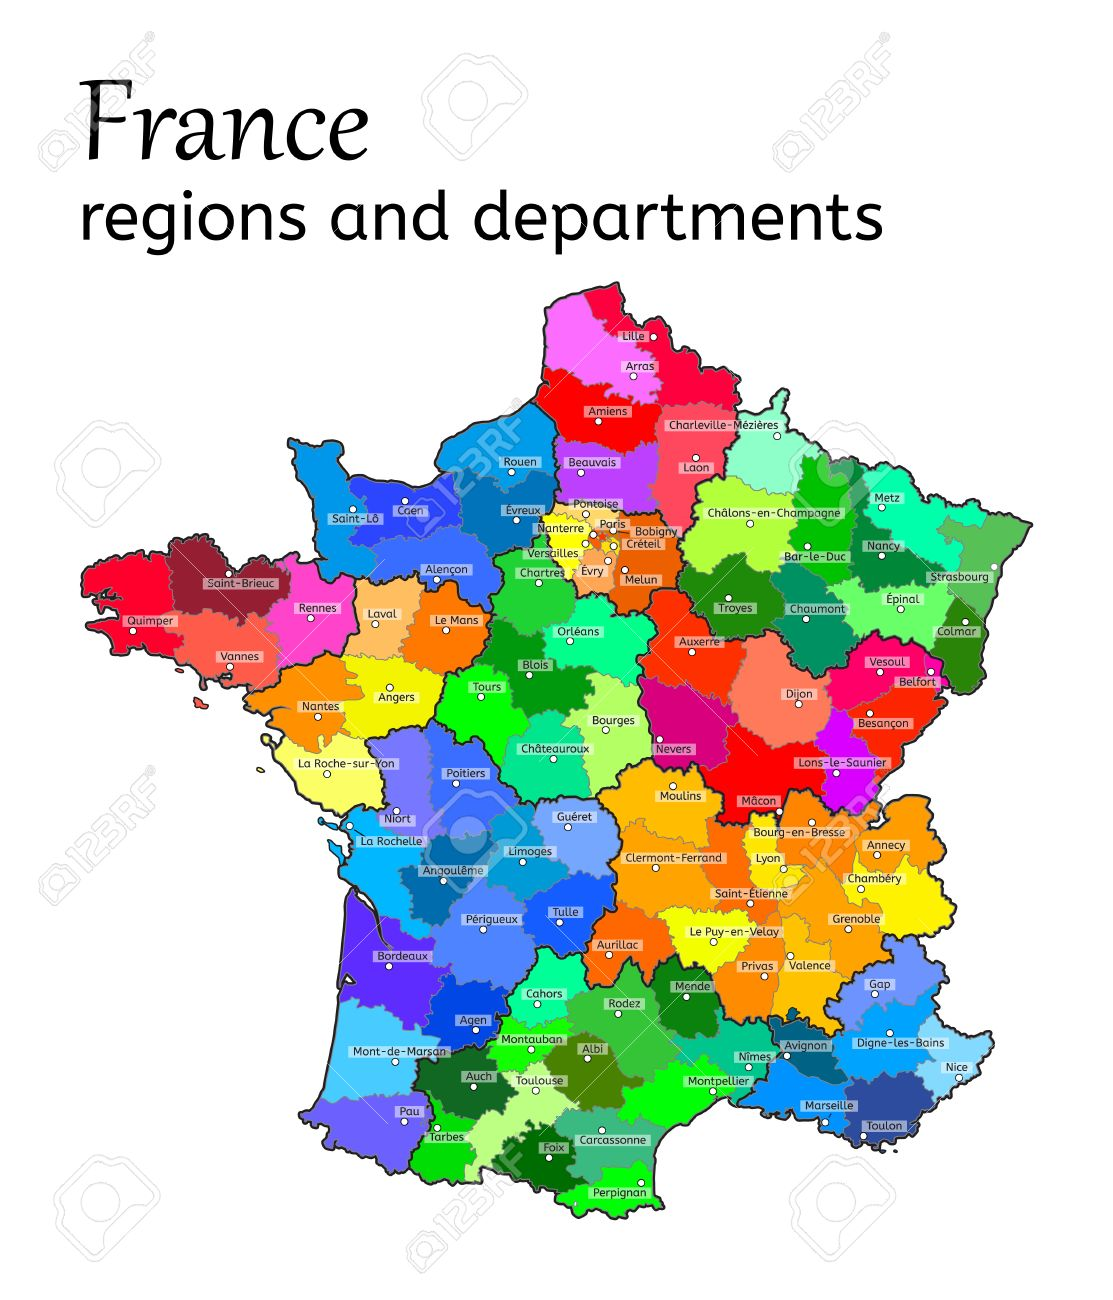 Evreux France Map.Administrative Map Of France With Regions And Departments On